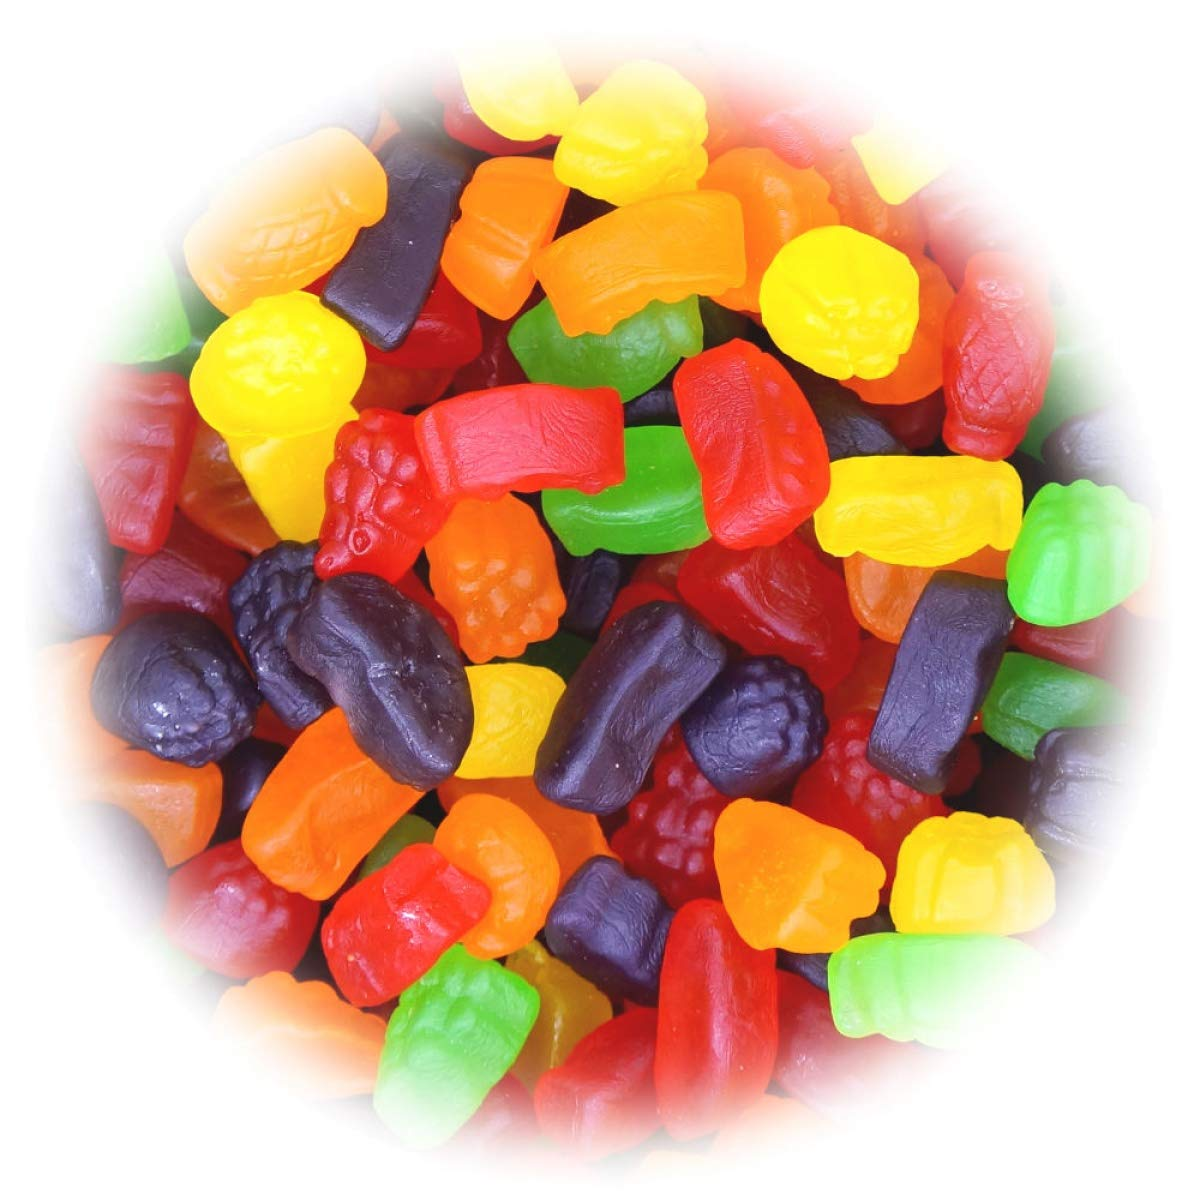 Canada Candy, Huge Bag of Sour Ju Jubes Gummies, 2.5kg/5.5lbs, Imported from Canada} by Canada Candy